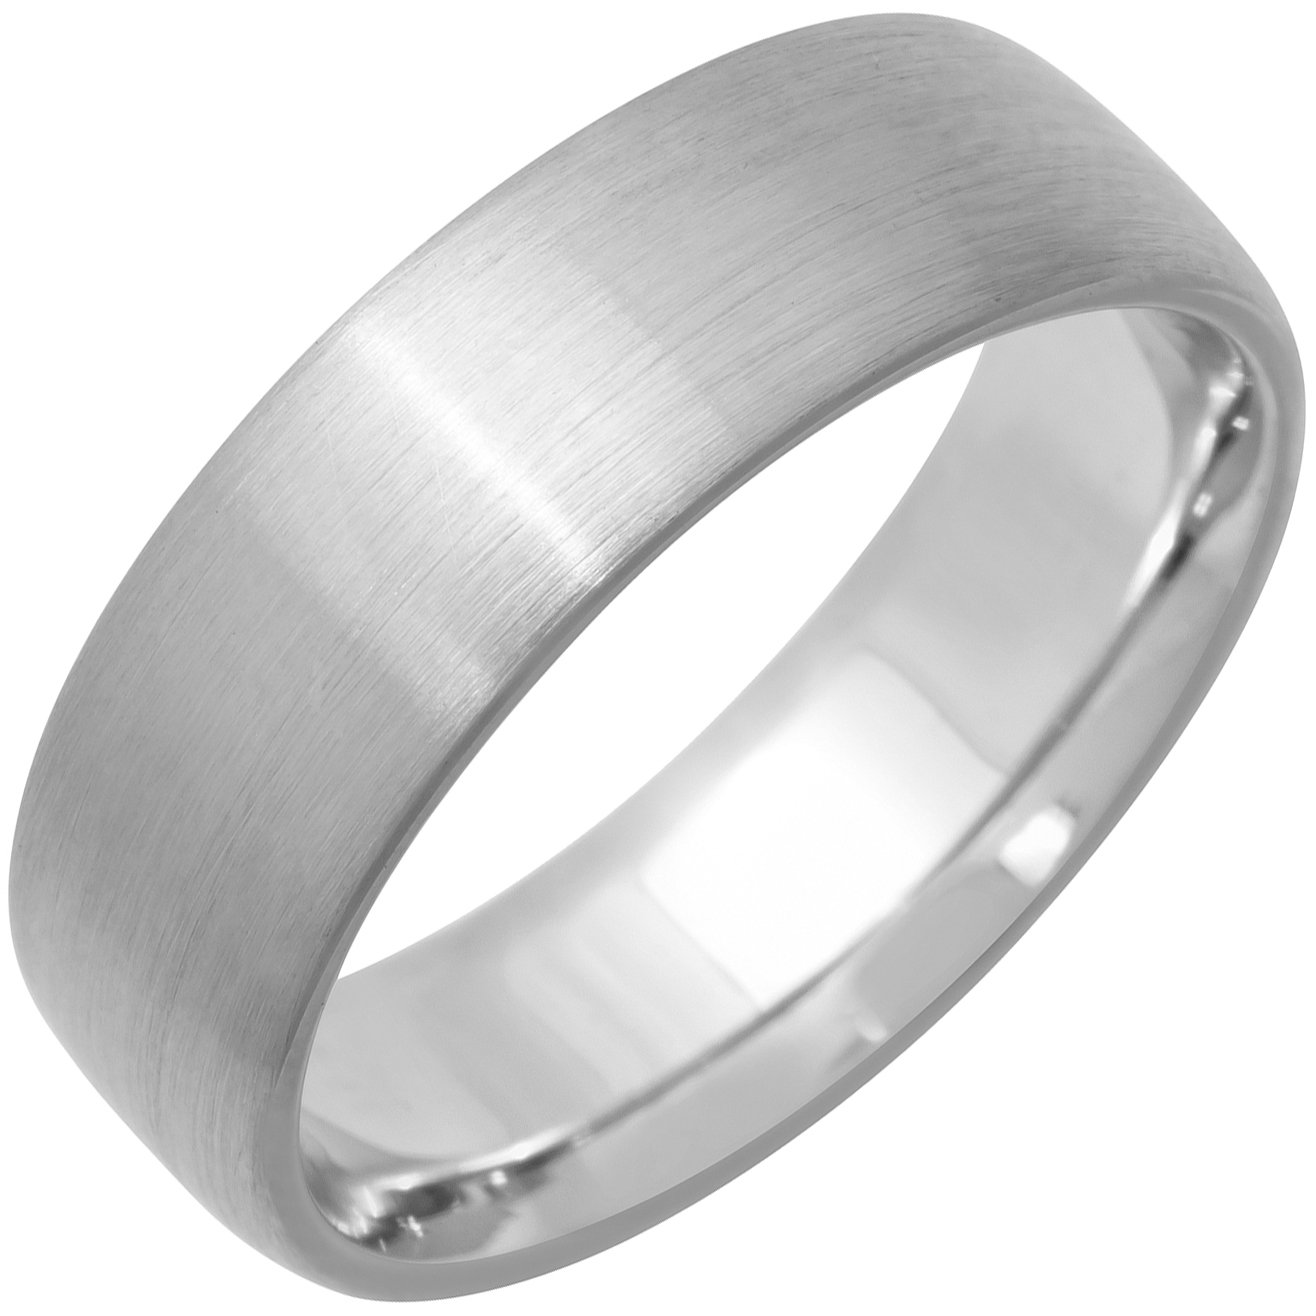 18K White Gold Traditional Classic Men's Comfort Fit Wedding Band (6mm) Size-13c1